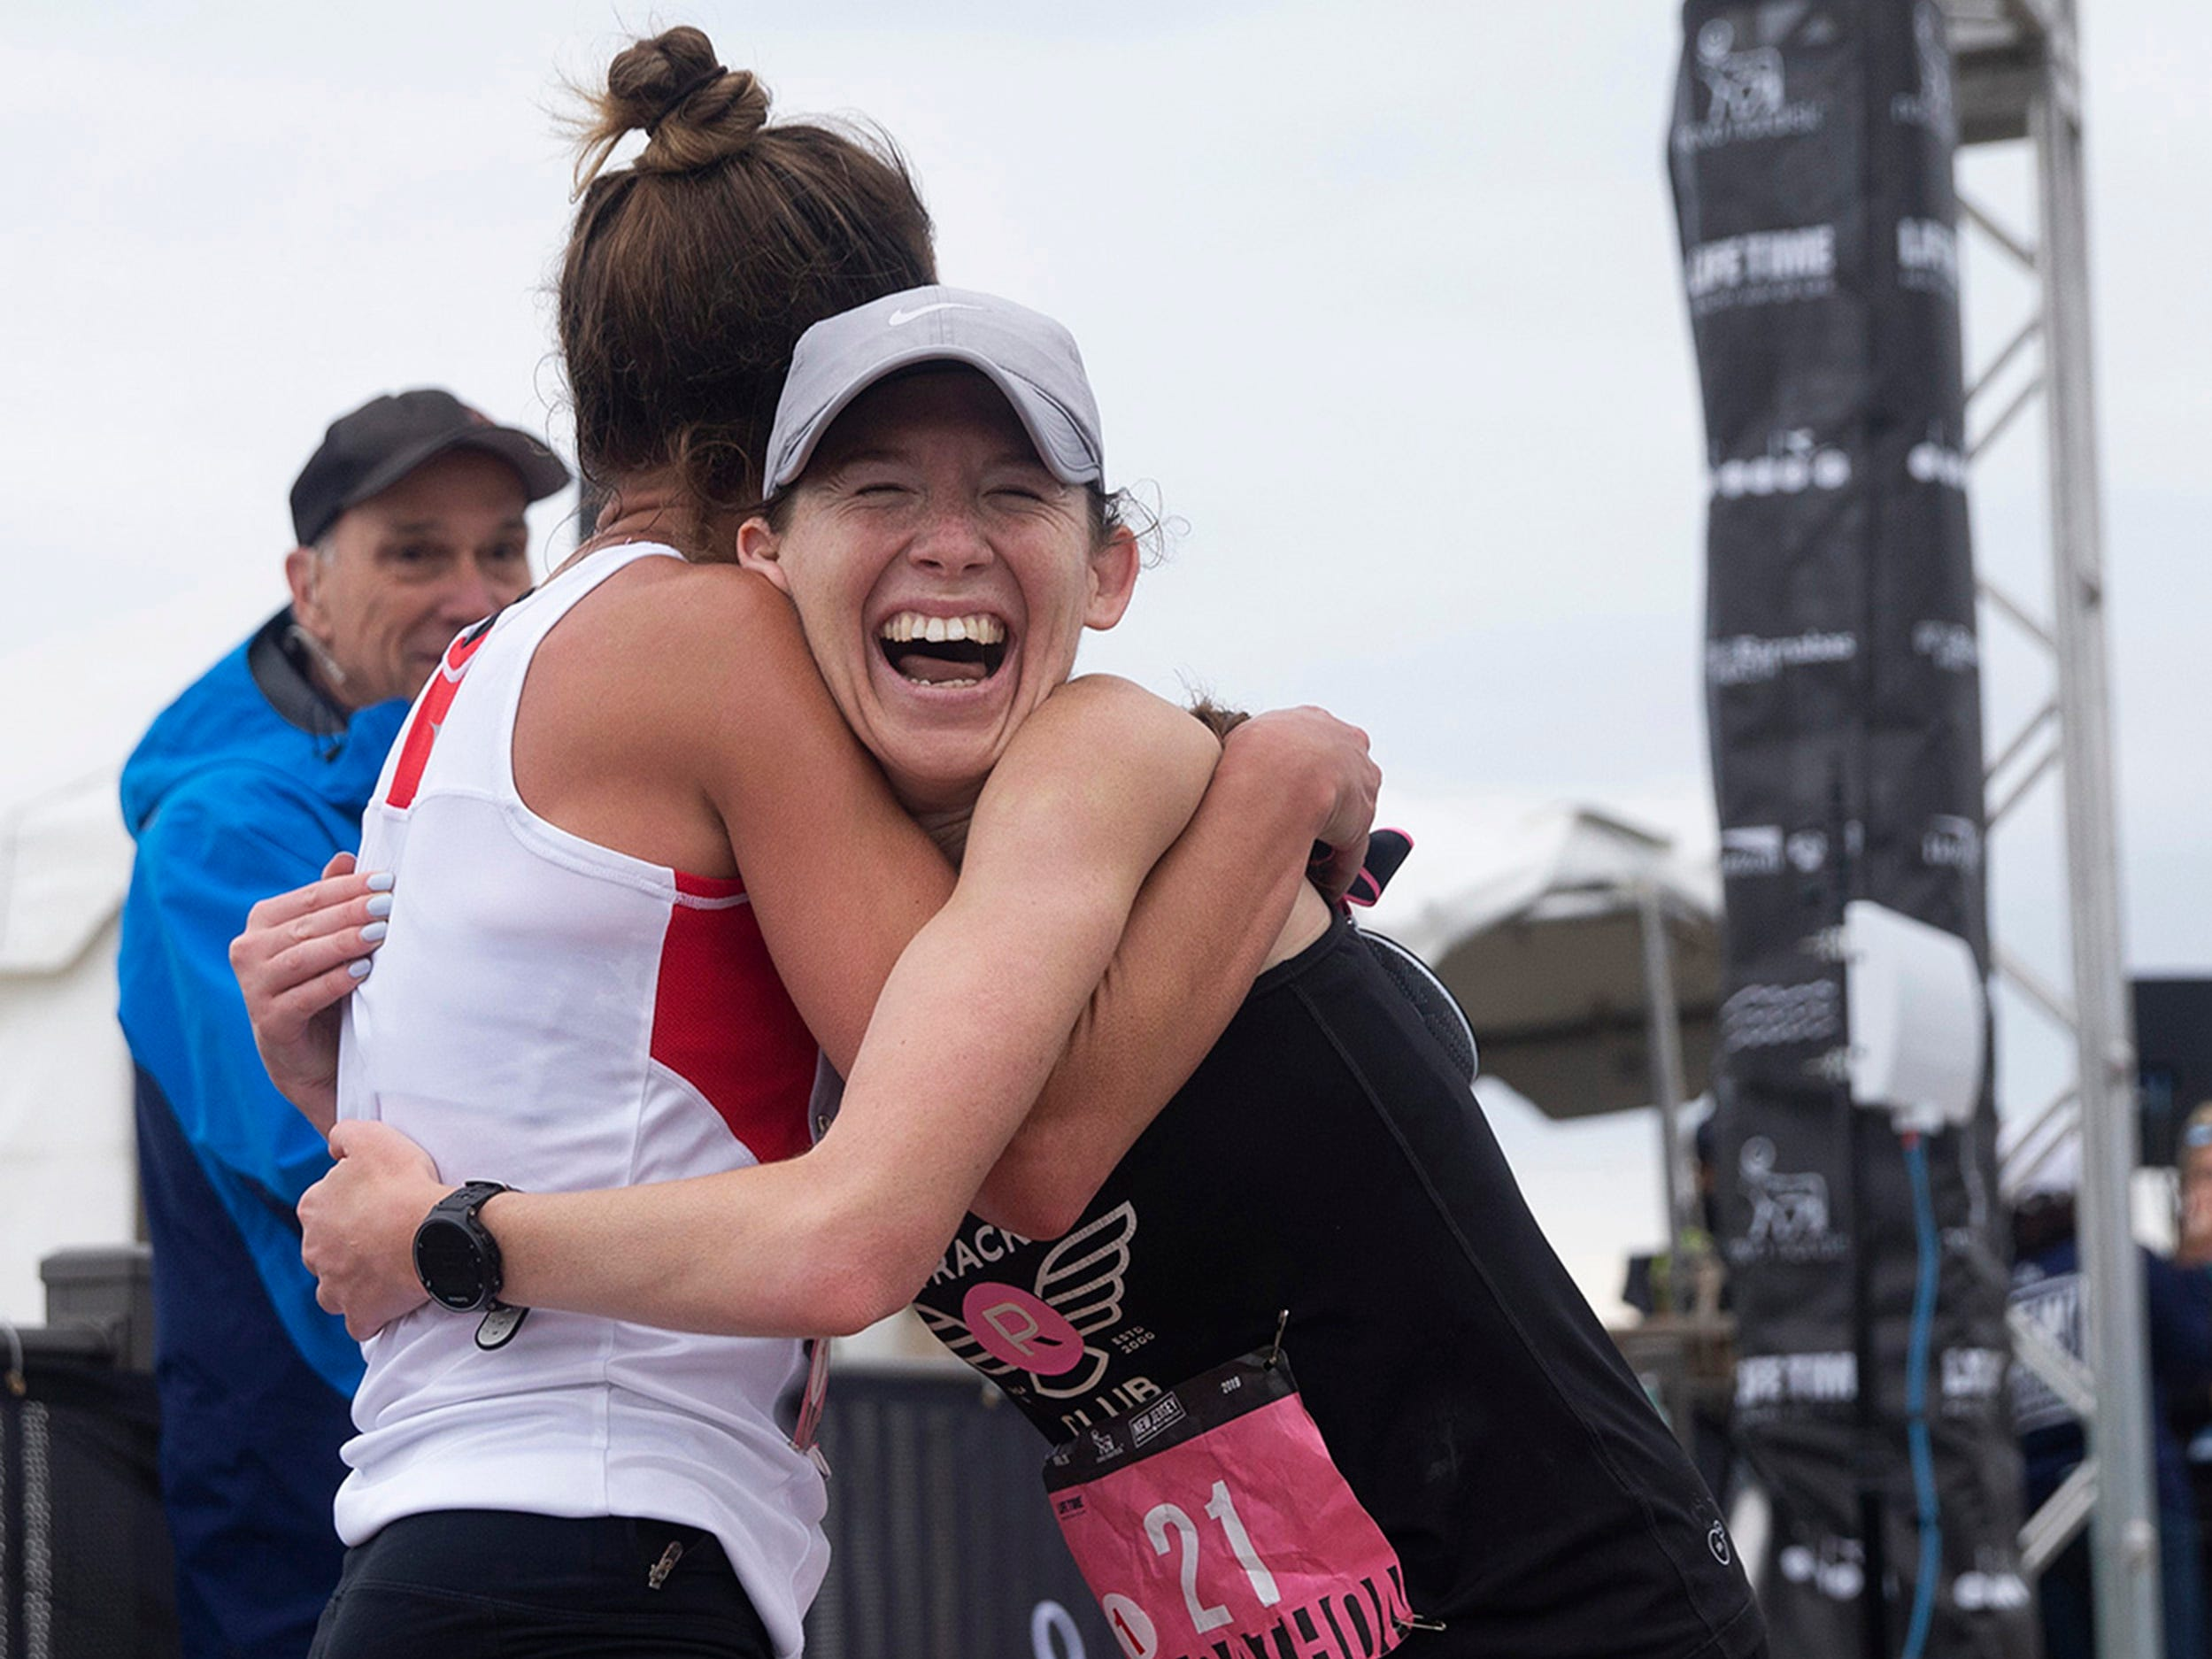 Kylie Pearse (right) gets a hug from women's winner Meghan Bishop at the finish line of the 2019 Novo Nordisk New Jersey Marathon and Half Marathon which started at Monmouth Park in Oceanport and ended at Ocean Promenade in Long Branch.